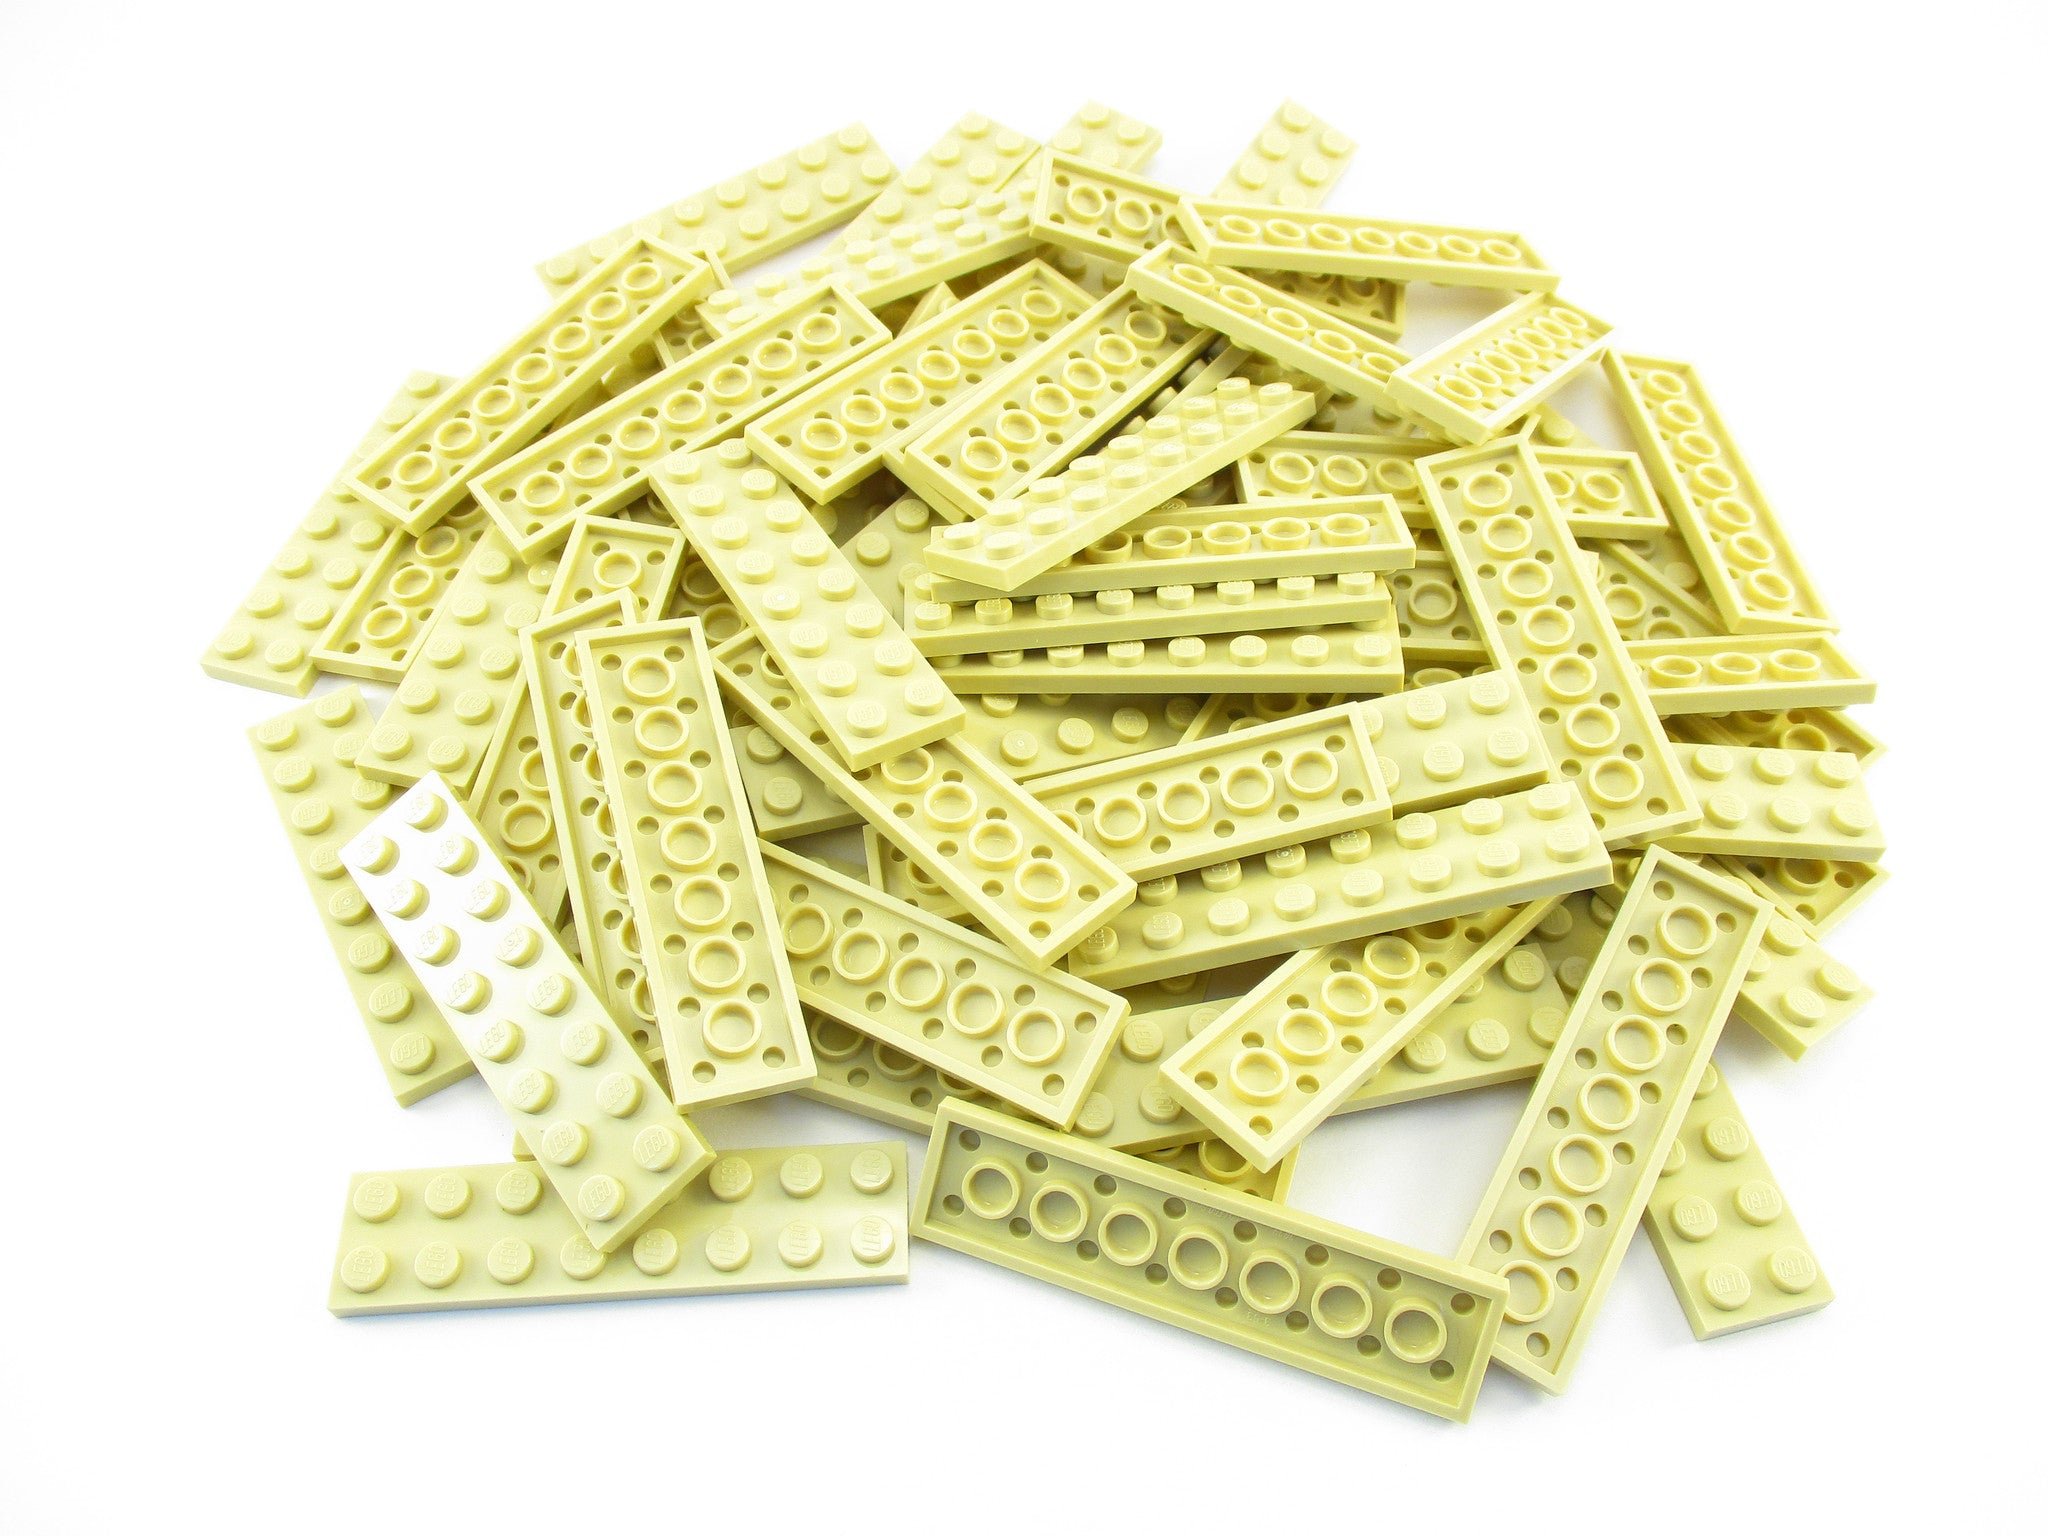 LEGO Tan Plate 2x8 Lot of 50 Parts Pieces 3034